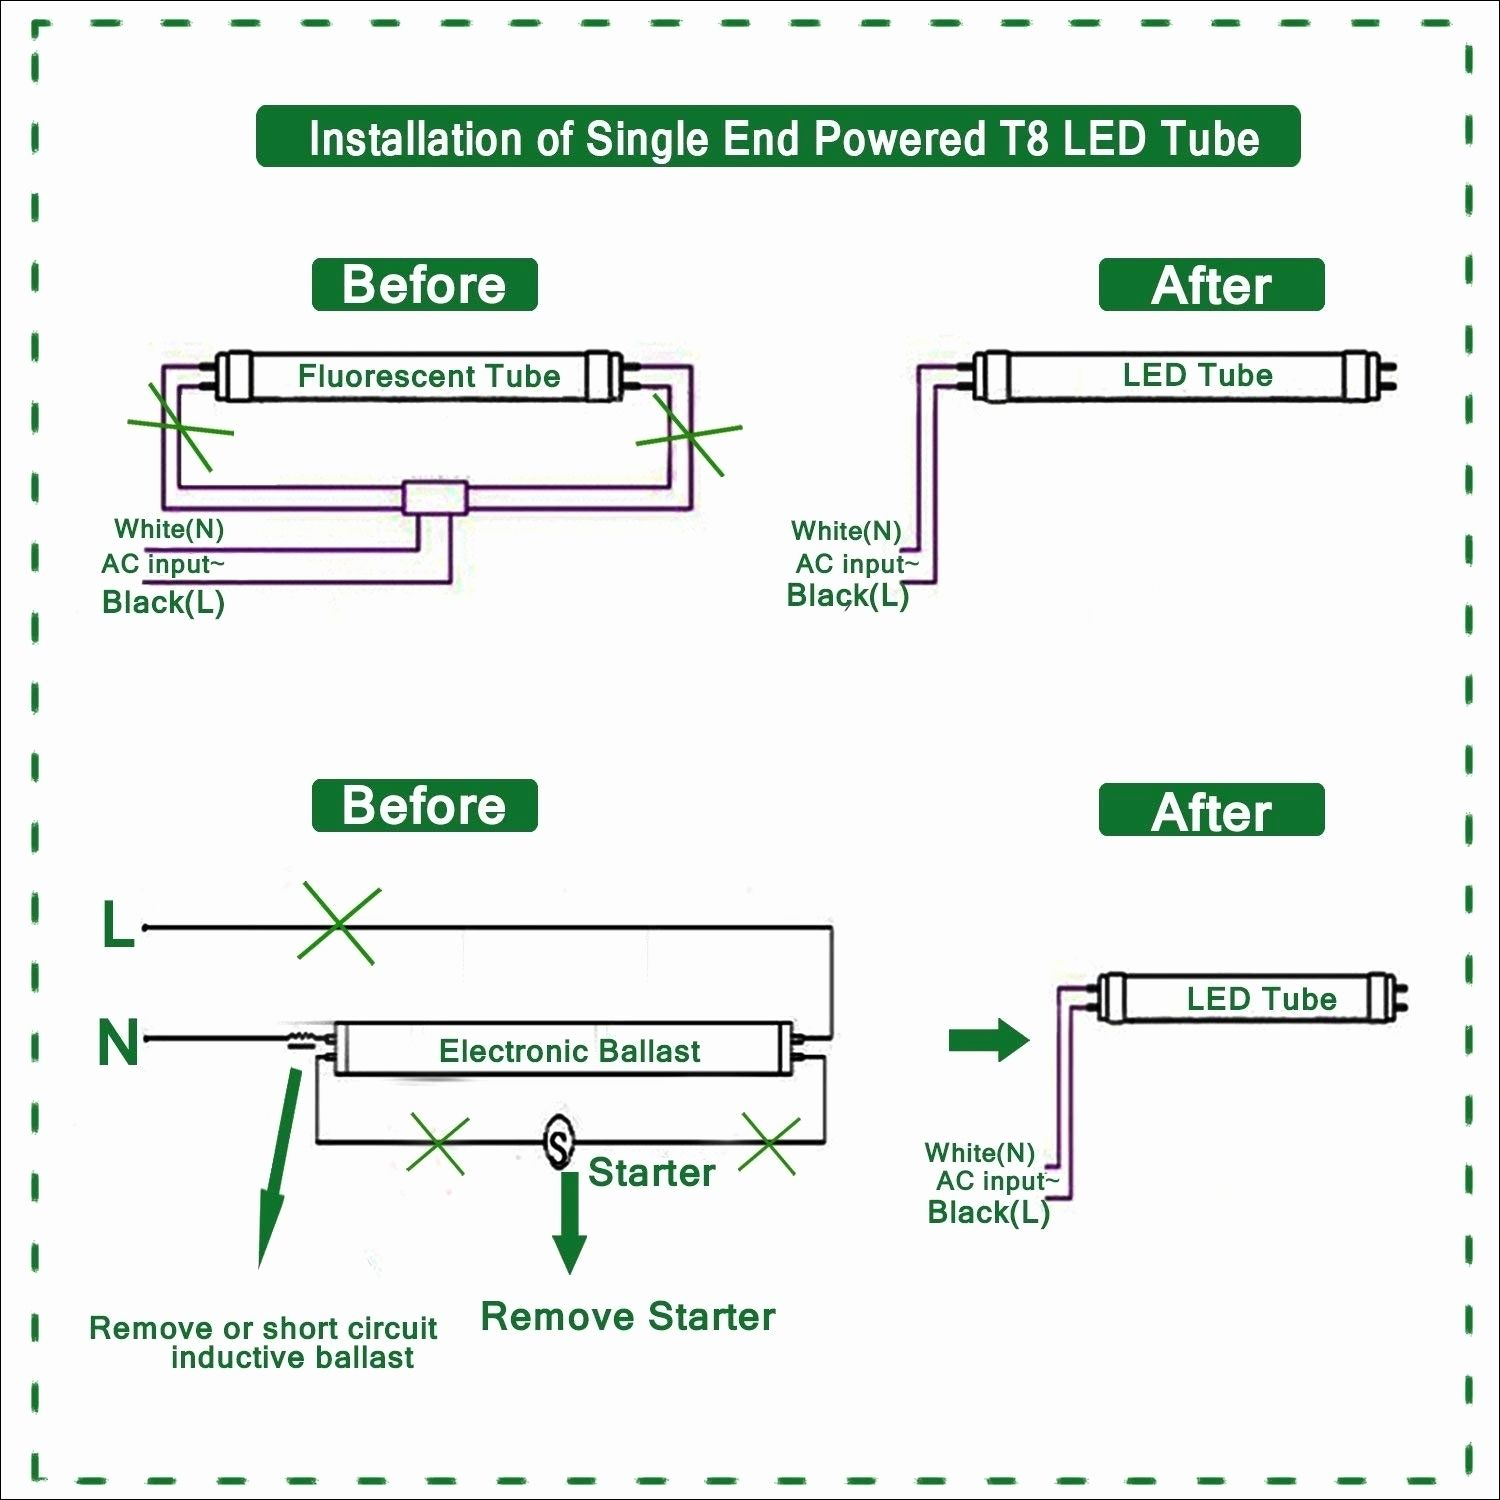 [SCHEMATICS_4LK]  T5 Led Tube Wiring Diagram - bookingritzcarlton.info | Led tubes, Led  fluorescent tube, Fluorescent tube | T5 Light Socket Wiring Diagram |  | Pinterest